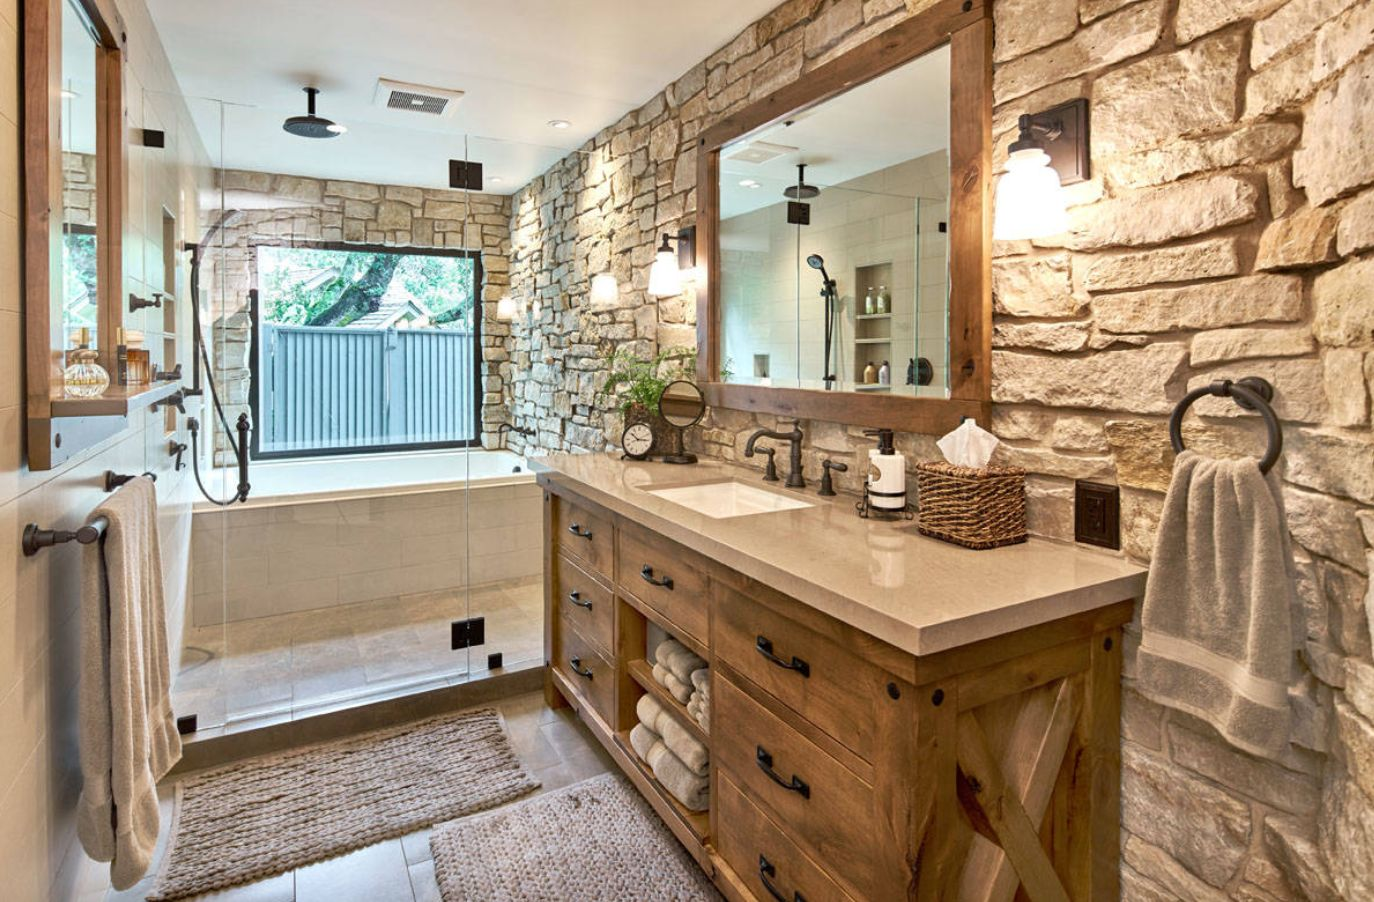 Rustic Bathroom Ideas Inspired By Nature's Beauty on Restroom Ideas  id=81296